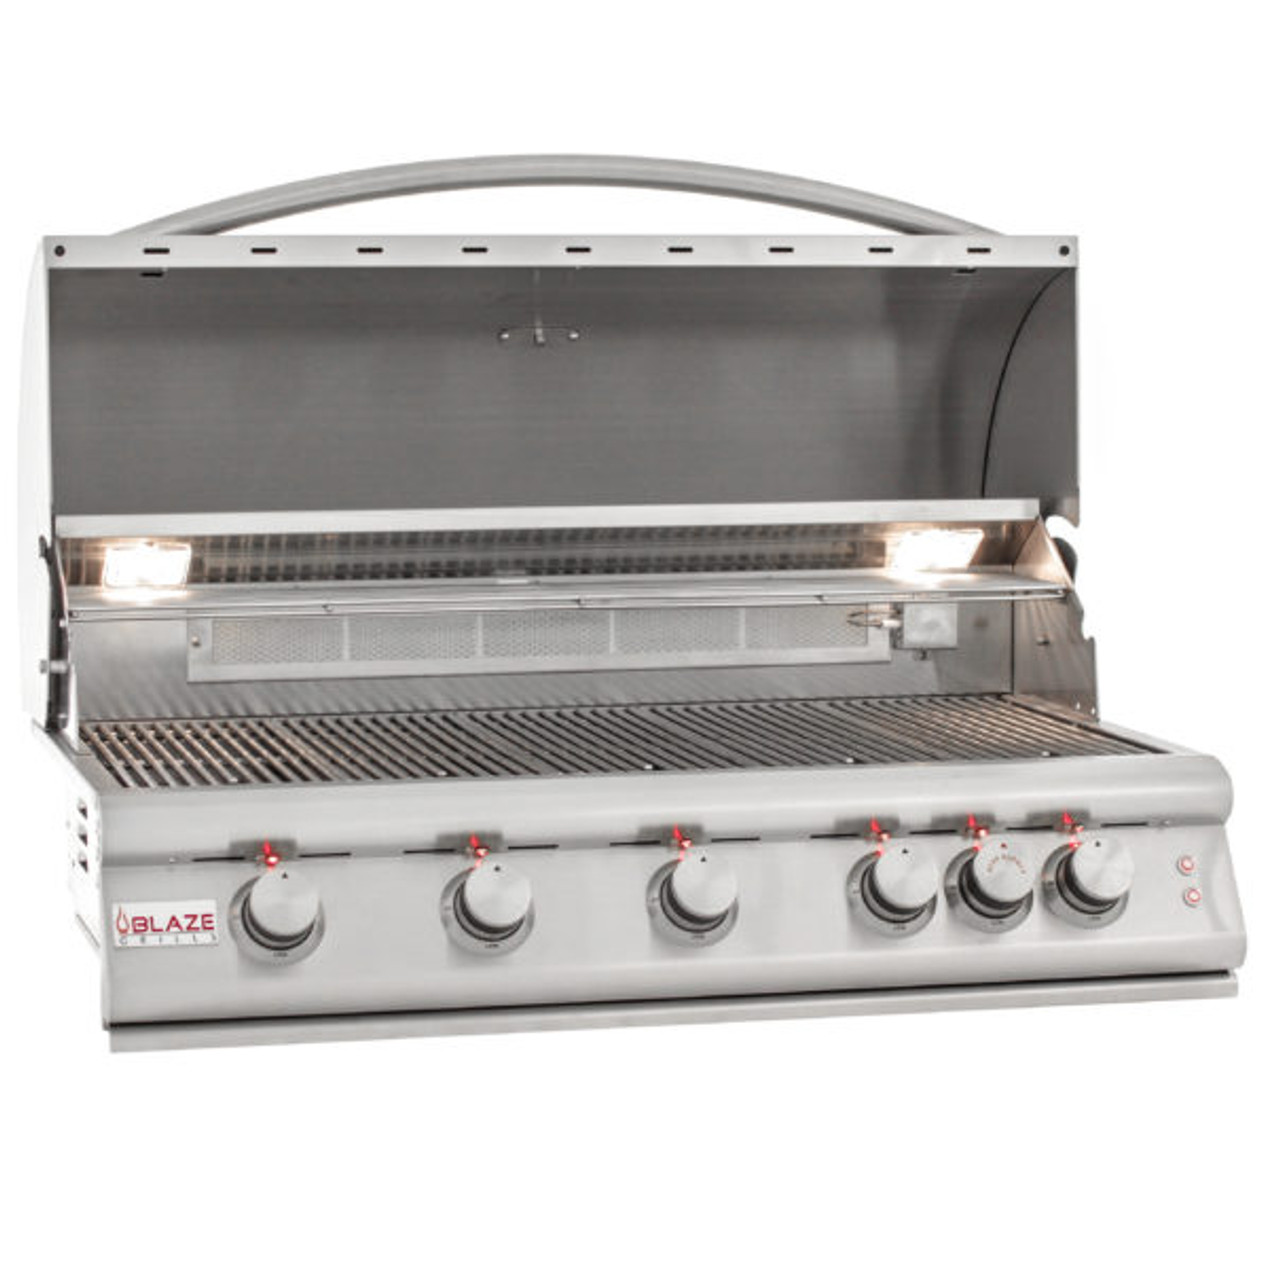 Blaze 5 Burner LTE Grill Built-In Propane Gas Grill with Lights